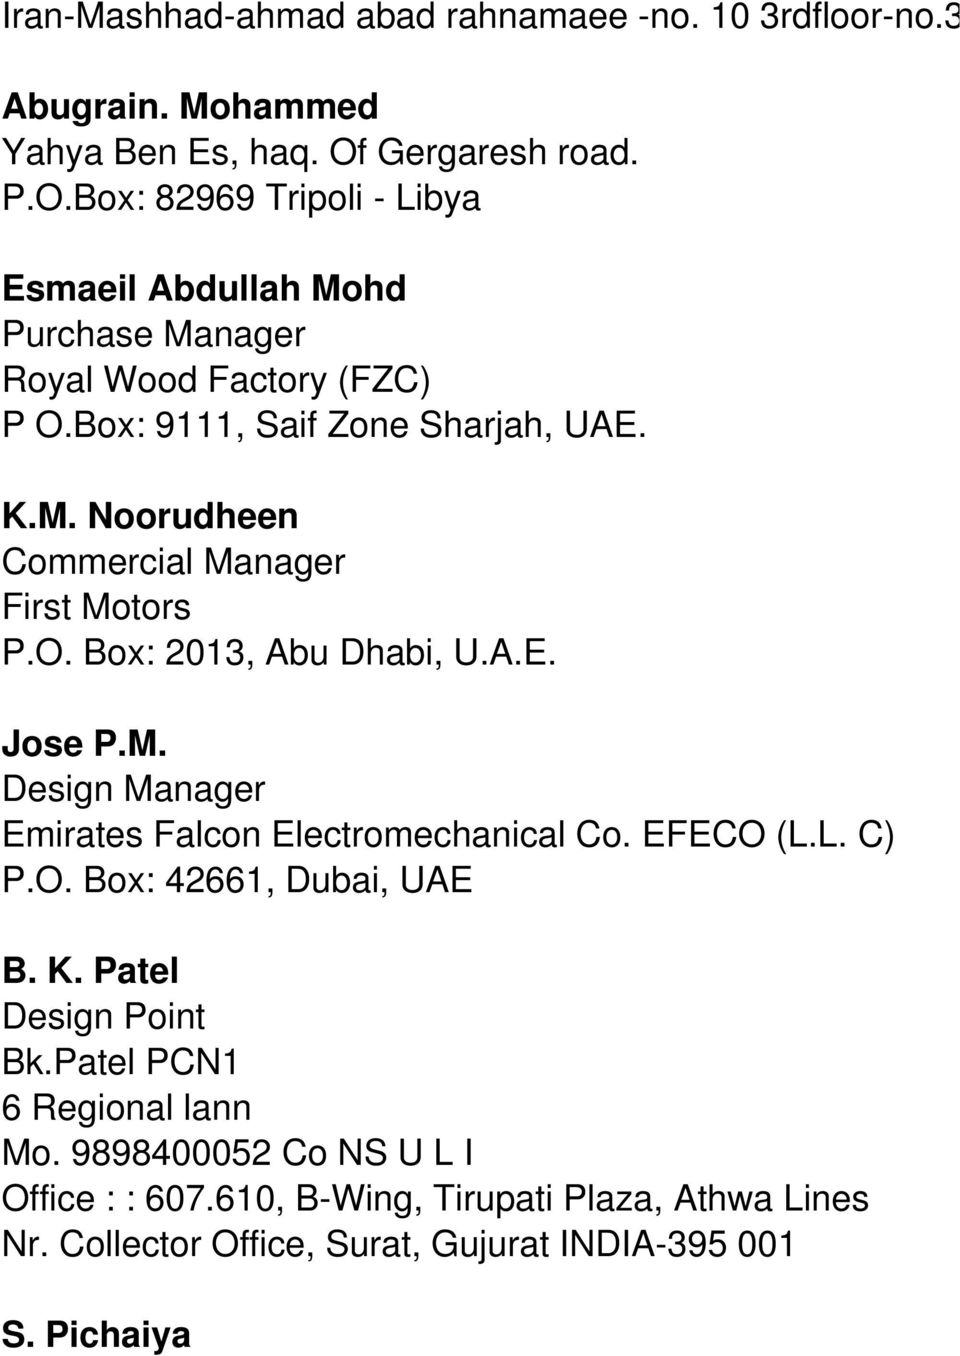 O. Box: 2013, Abu Dhabi, U.A.E. Jose P.M. Design Manager Emirates Falcon Electromechanical Co. EFECO (L.L. C) P.O. Box: 42661, Dubai, UAE B. K.